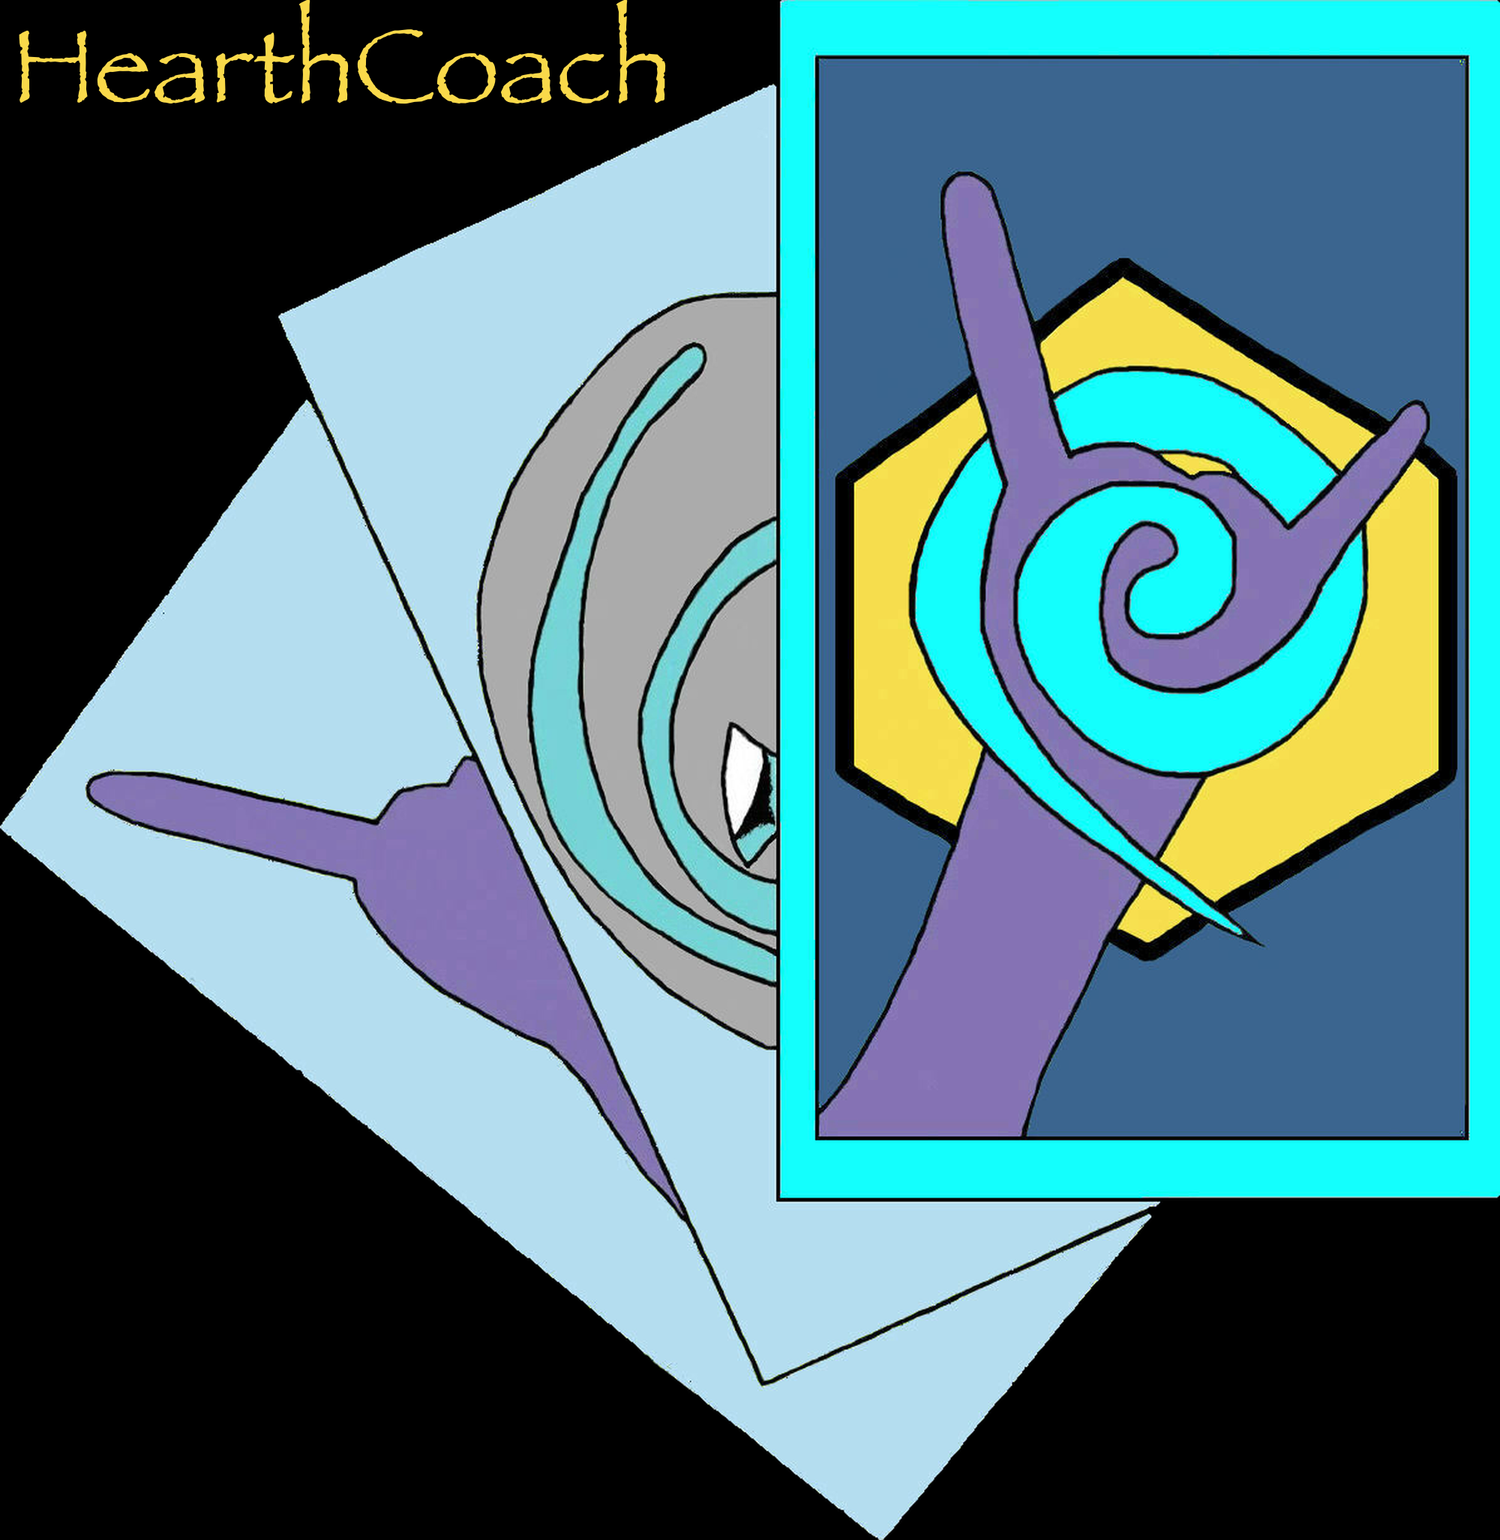 HearthCoach | Hearthstone Coaching